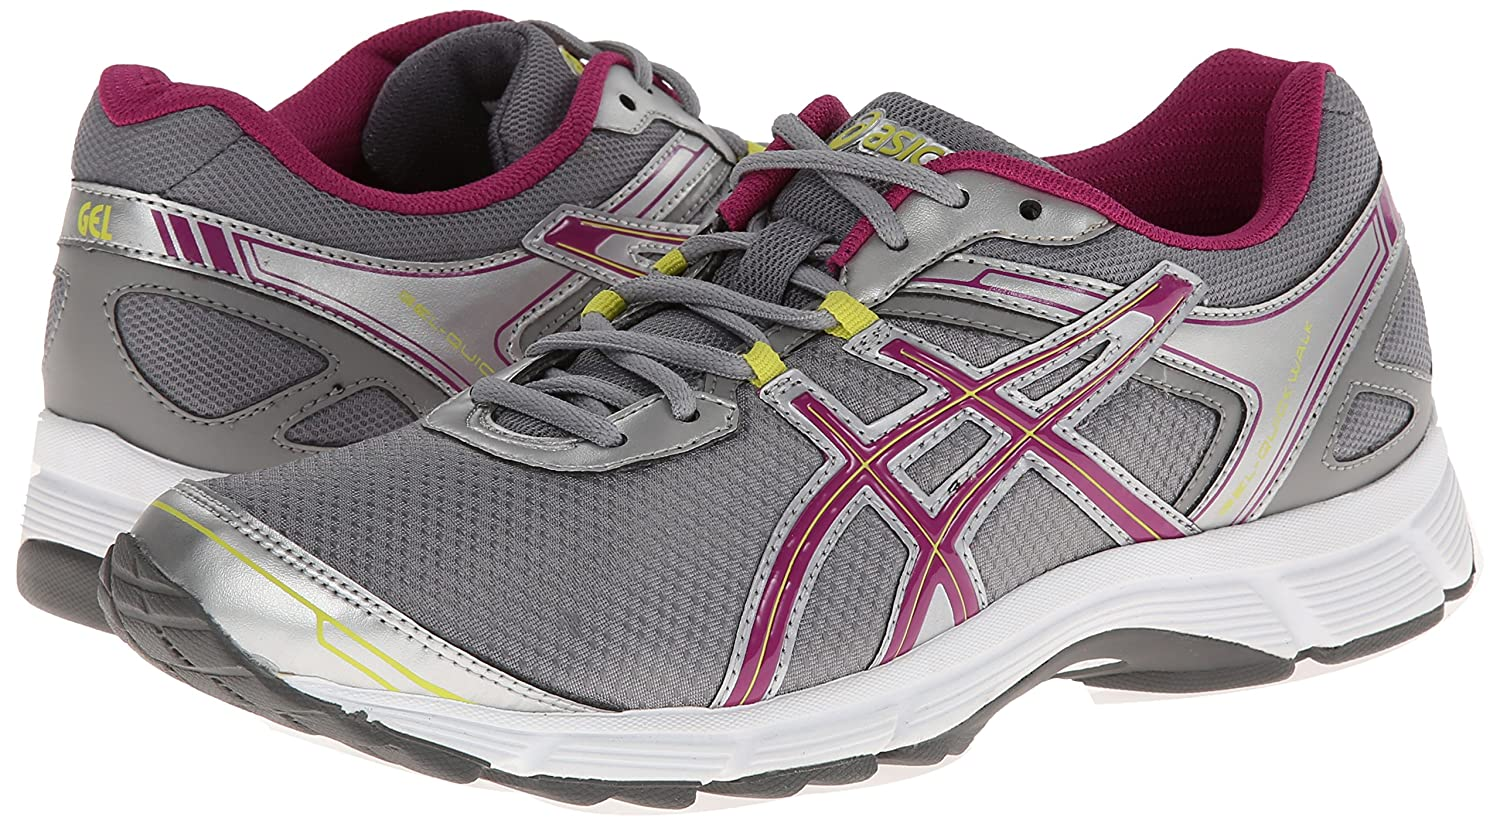 Asics Gel-Quickwalk 2 Design